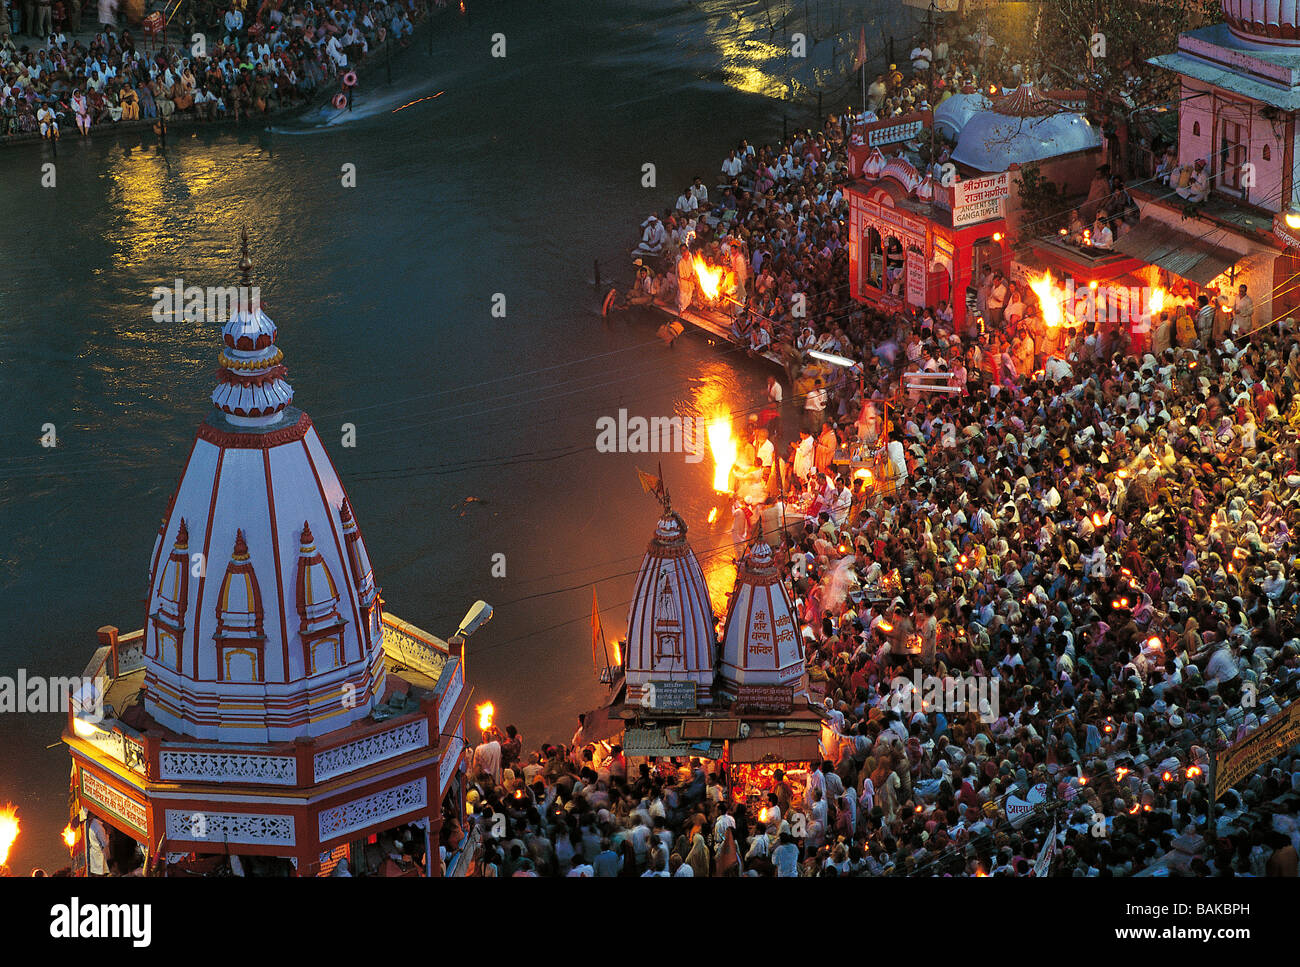 India, Uttarakhand State, Haridwar, the Kumbh Mela is a Hindu pilgrimage that occurs four times every twelve years - Stock Image